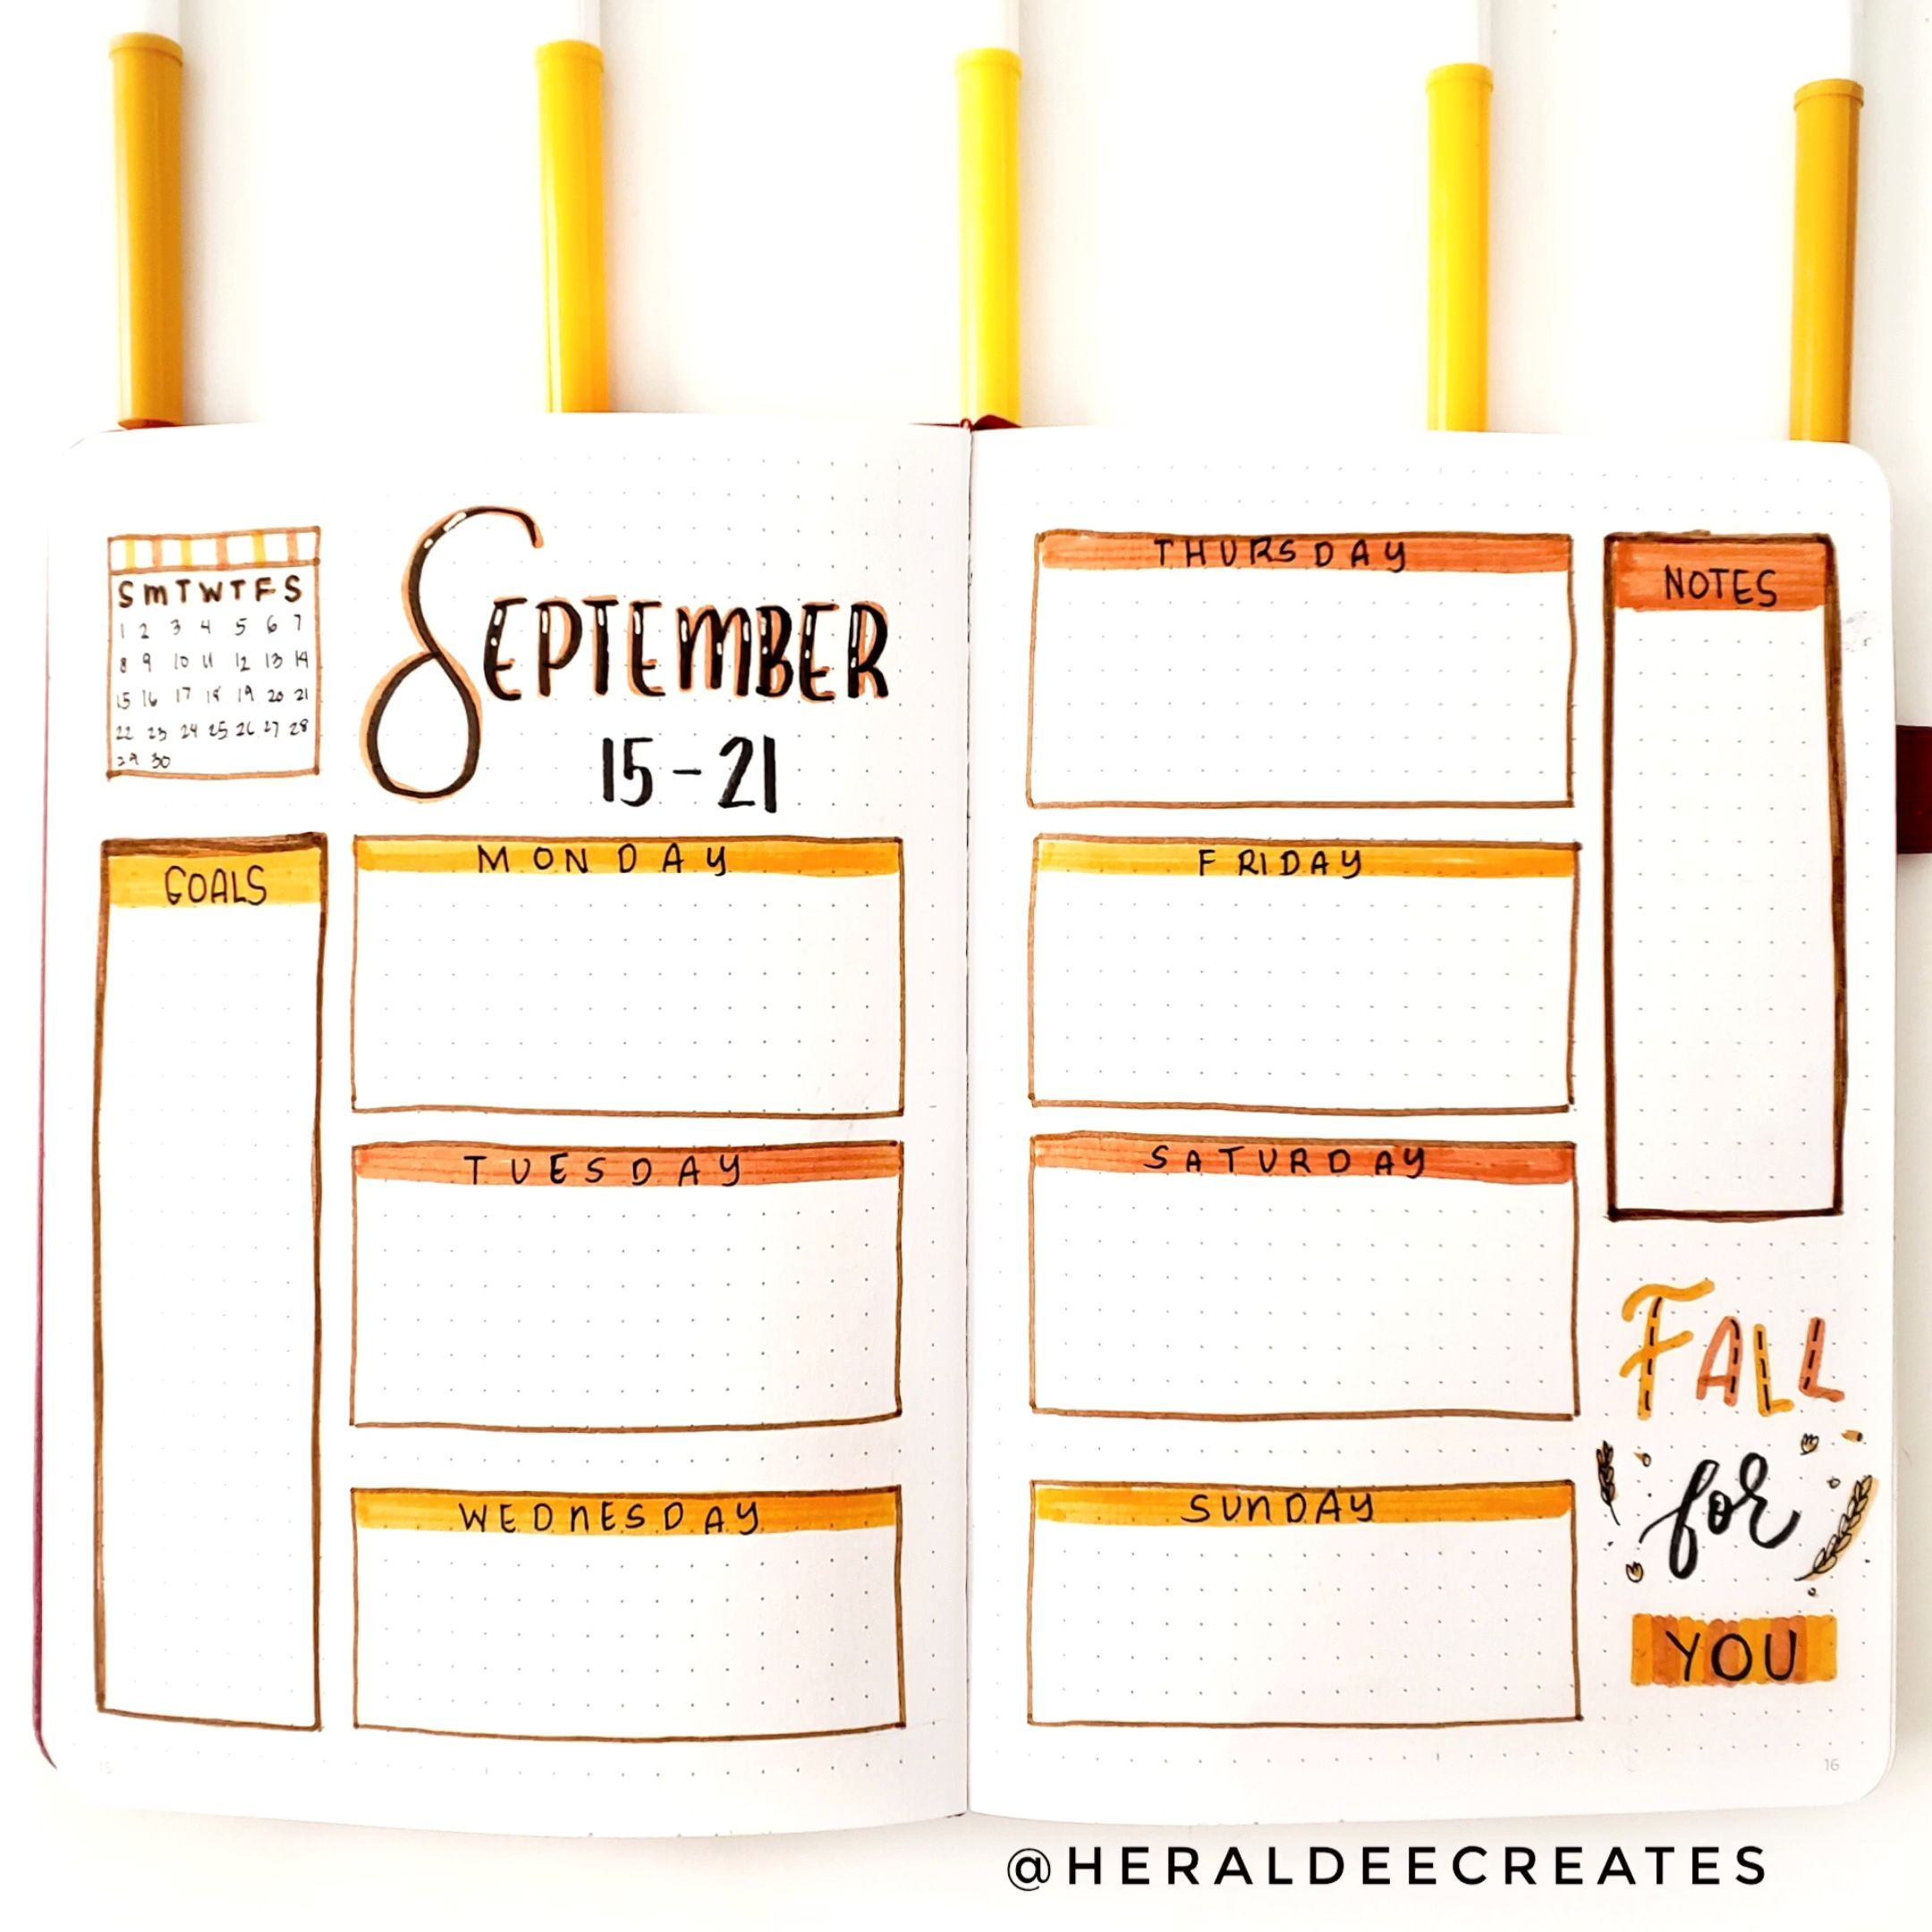 My Fall Bullet Journal Set-up is here! Get several inspirations for simple and easy fall bullet journal spread Ideas. Choose from 3 Weekly Spread designs, monthly spread, mood tracker, doodles and more! Watch video tutorials for a step-by-step guide to create your best bullet journal spreads. Plus practice your calligraphy skills with unique Fall Quotes that you'll surely love. #BulletJournal #Fall #Bujo #FallQuotes #FallTheme via @thoughtsbucket